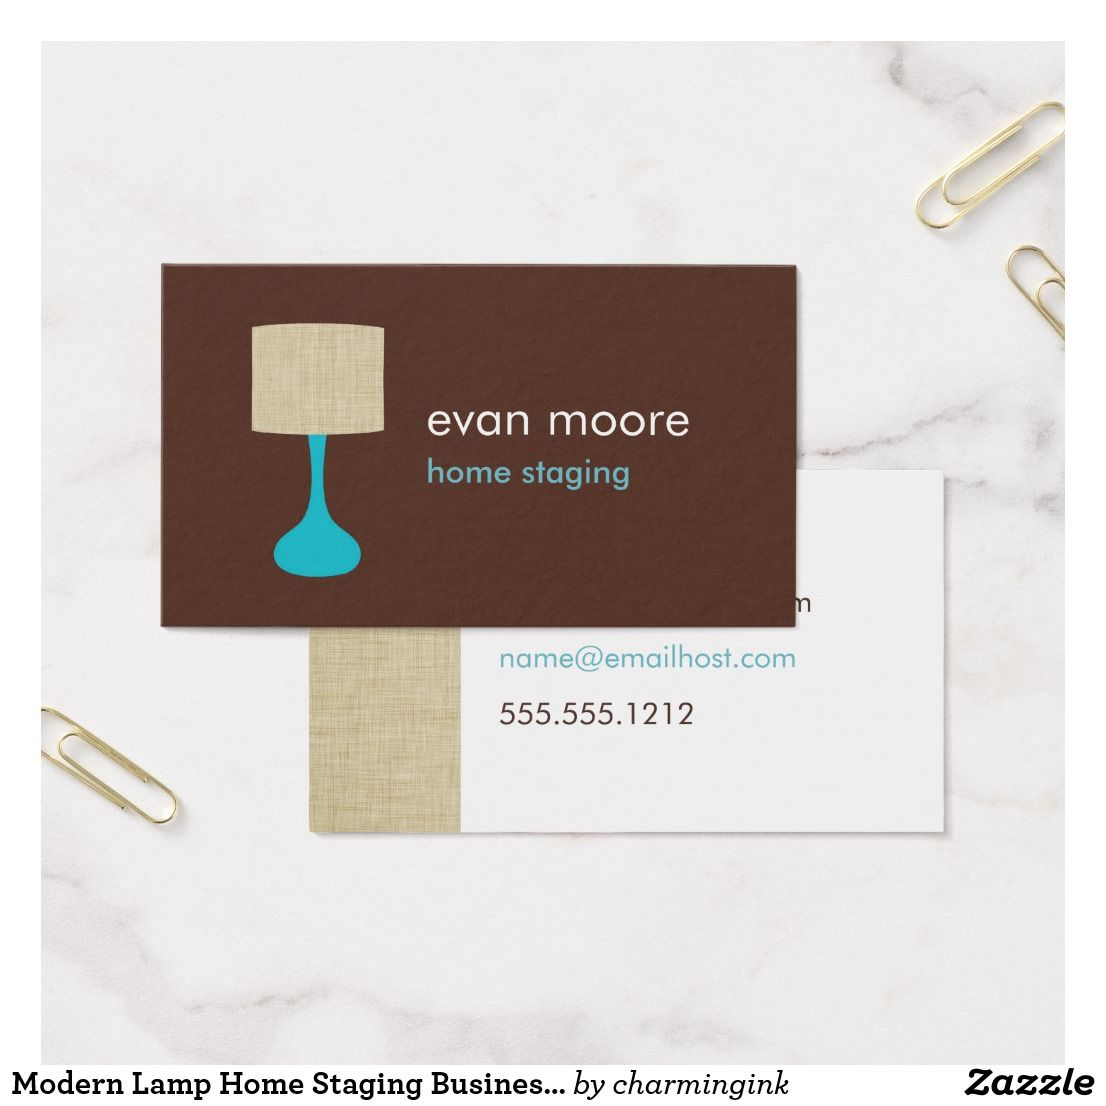 Modern Lamp Home Staging Business Card | Business | Pinterest ...